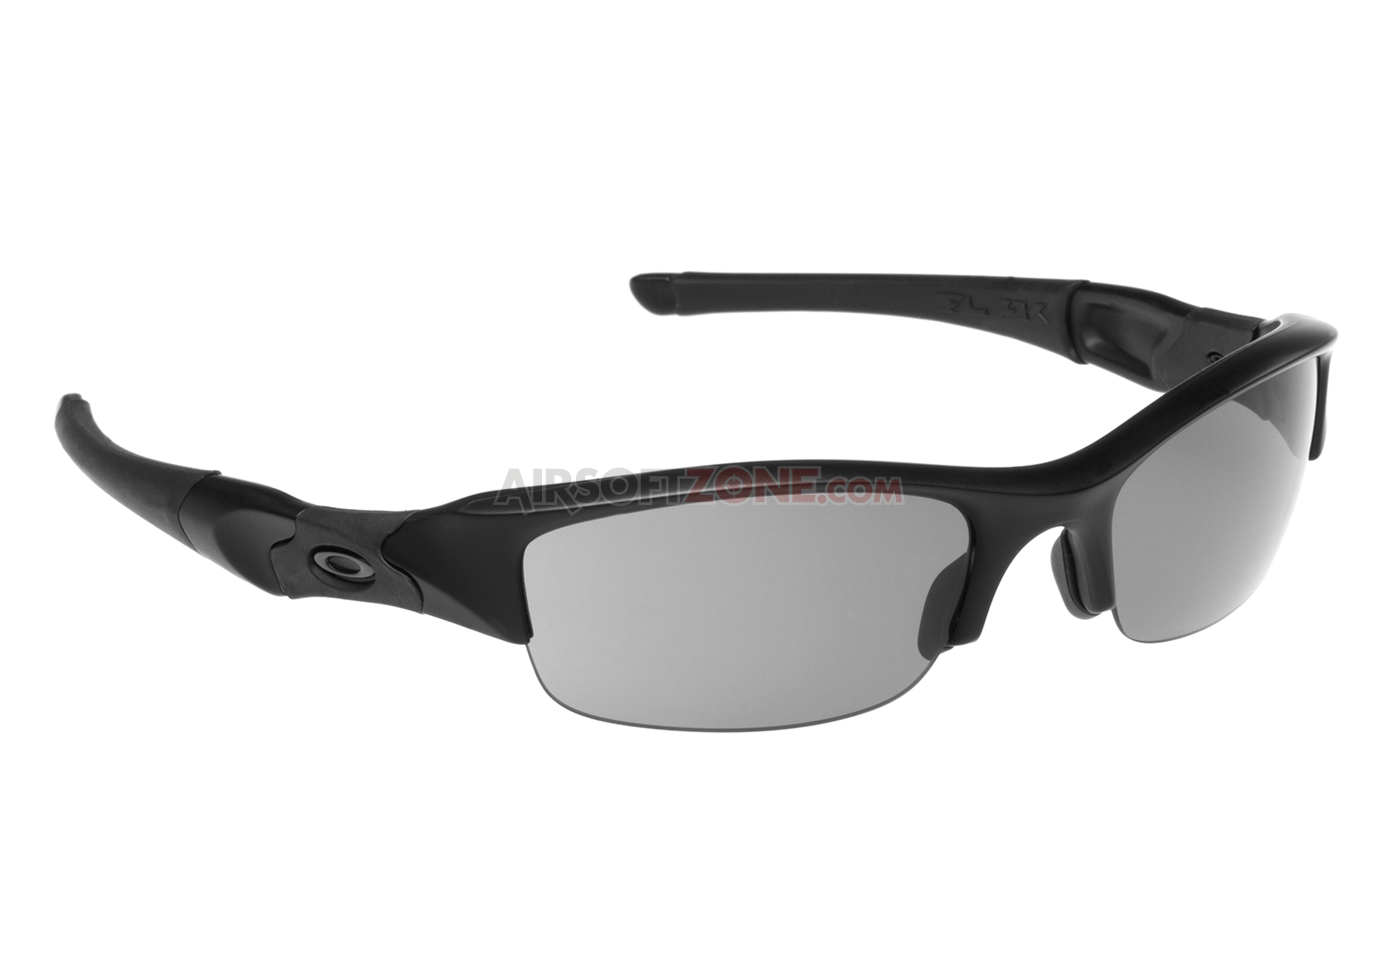 02f683f601428 SI Flak Jacket Black (Oakley) - Eyewear - Protective Equipment ...